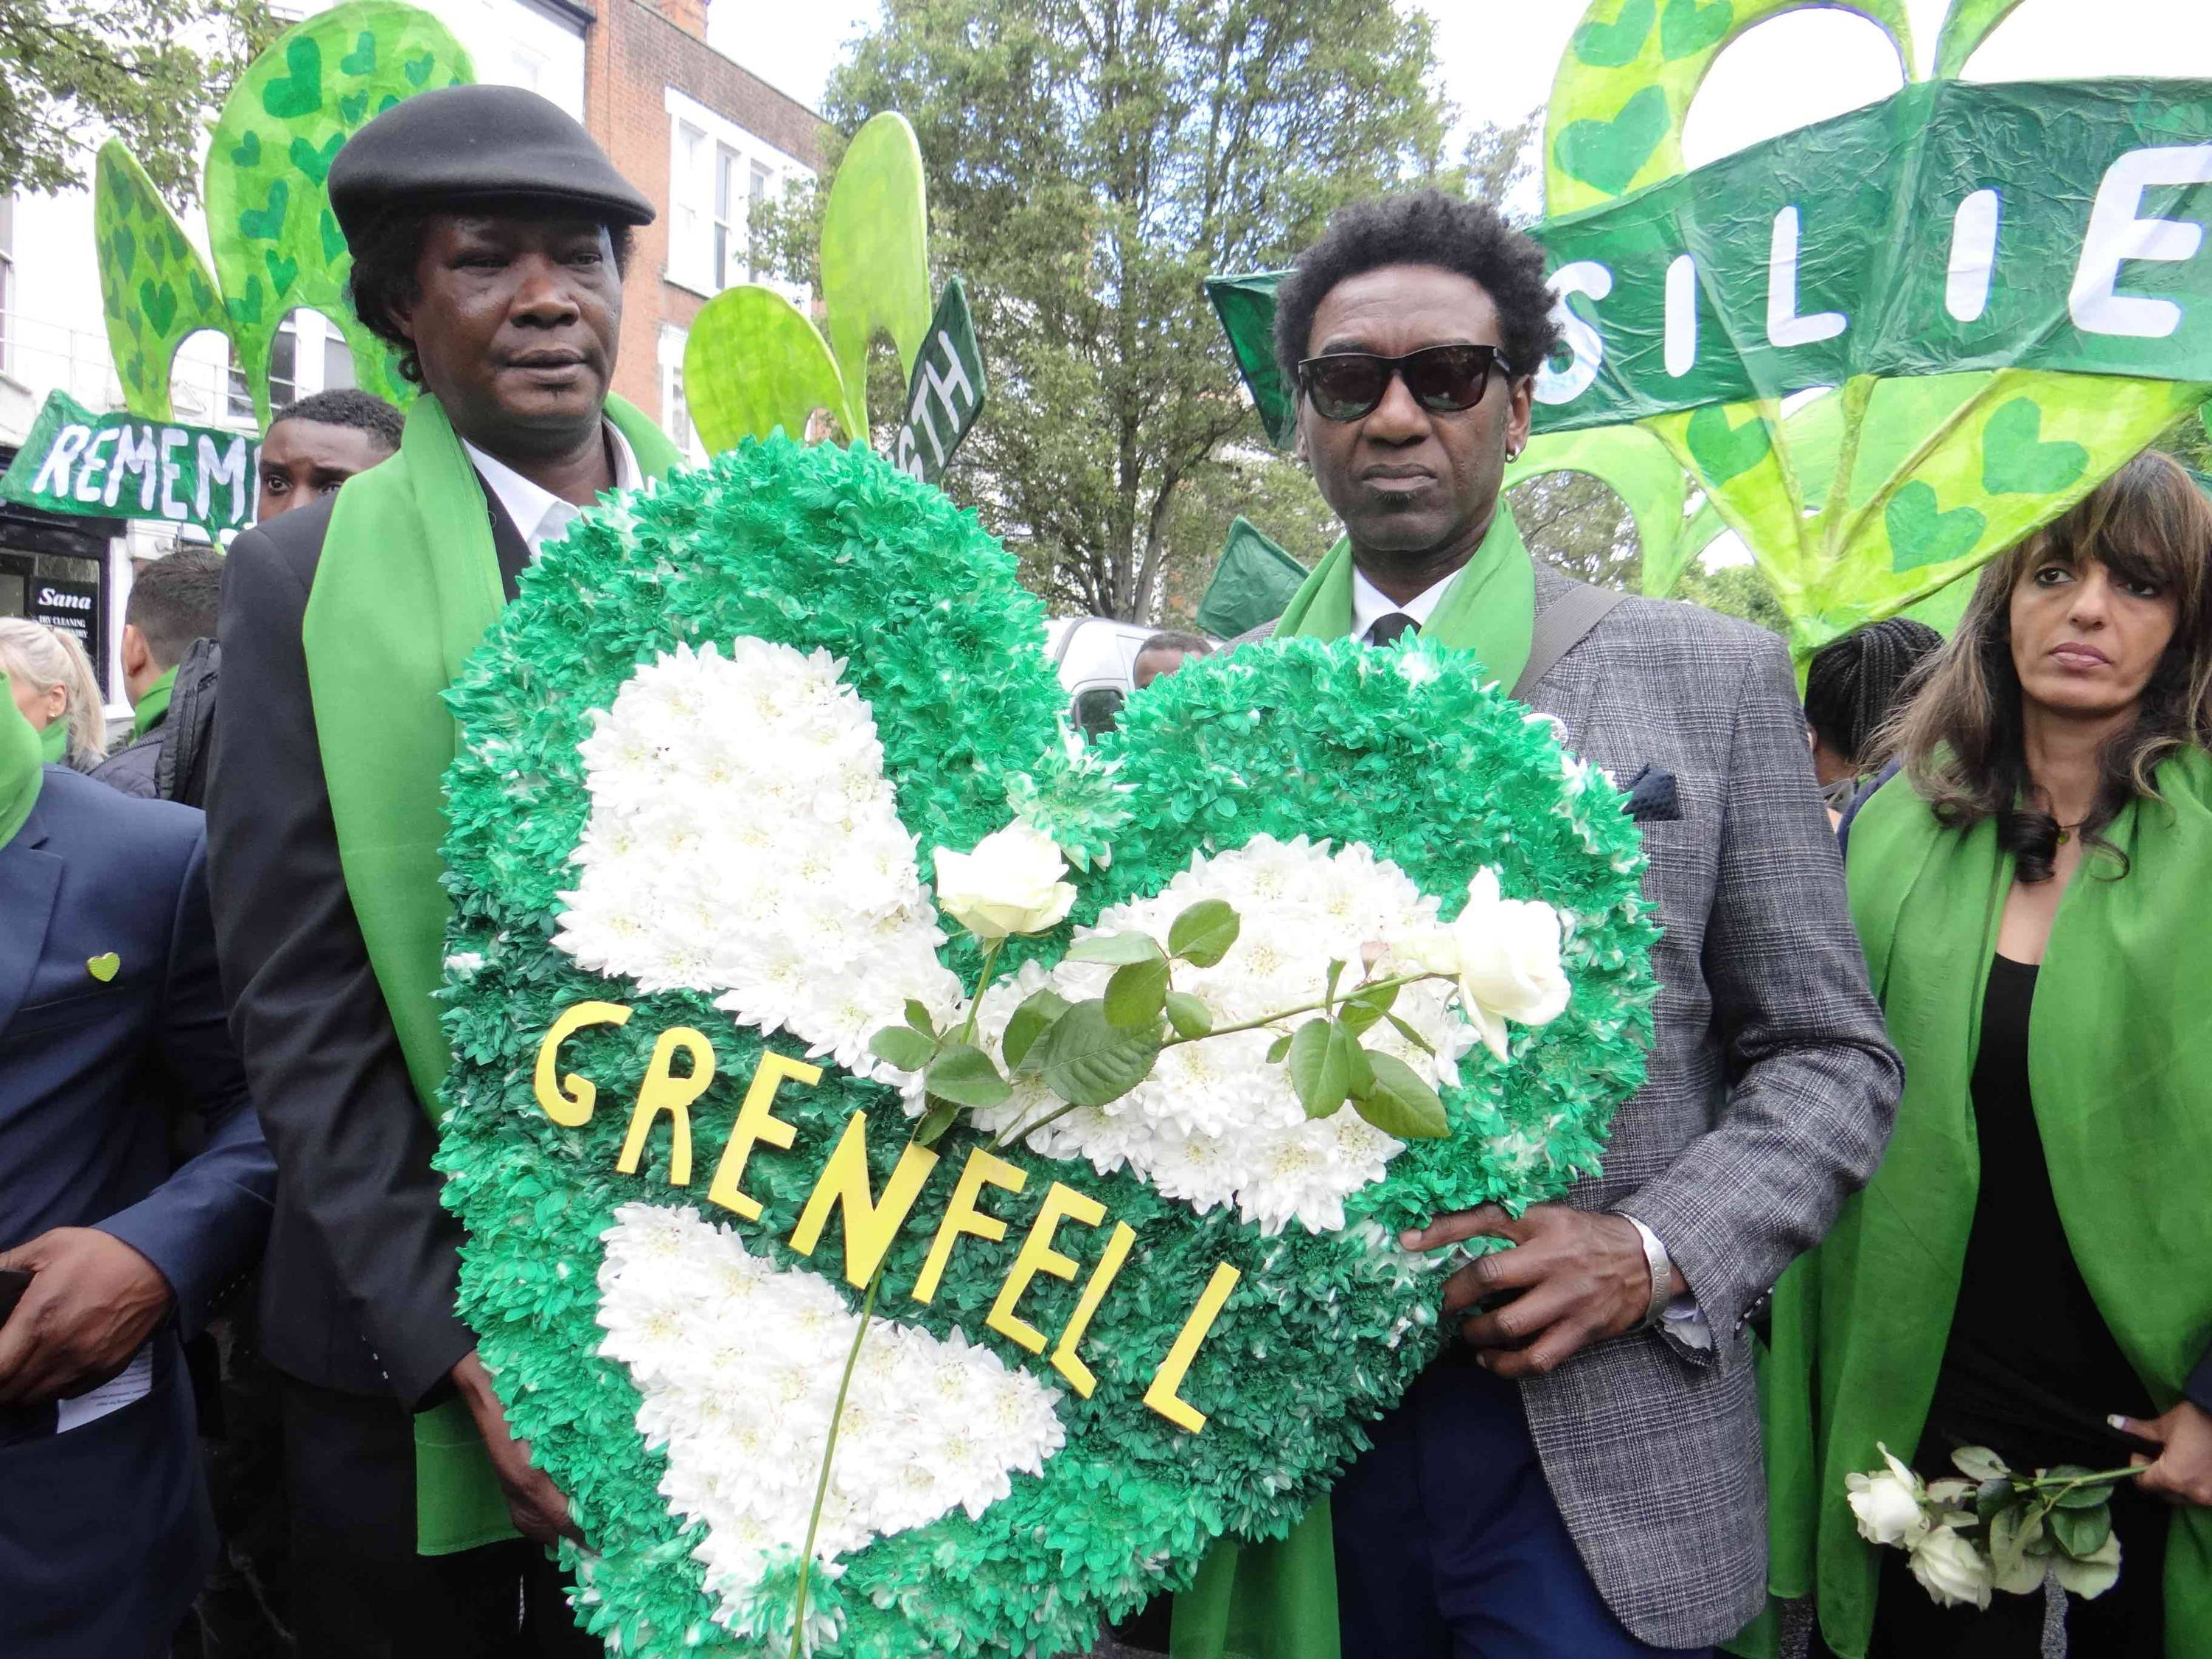 Two men holding a Grenfell floral tribute